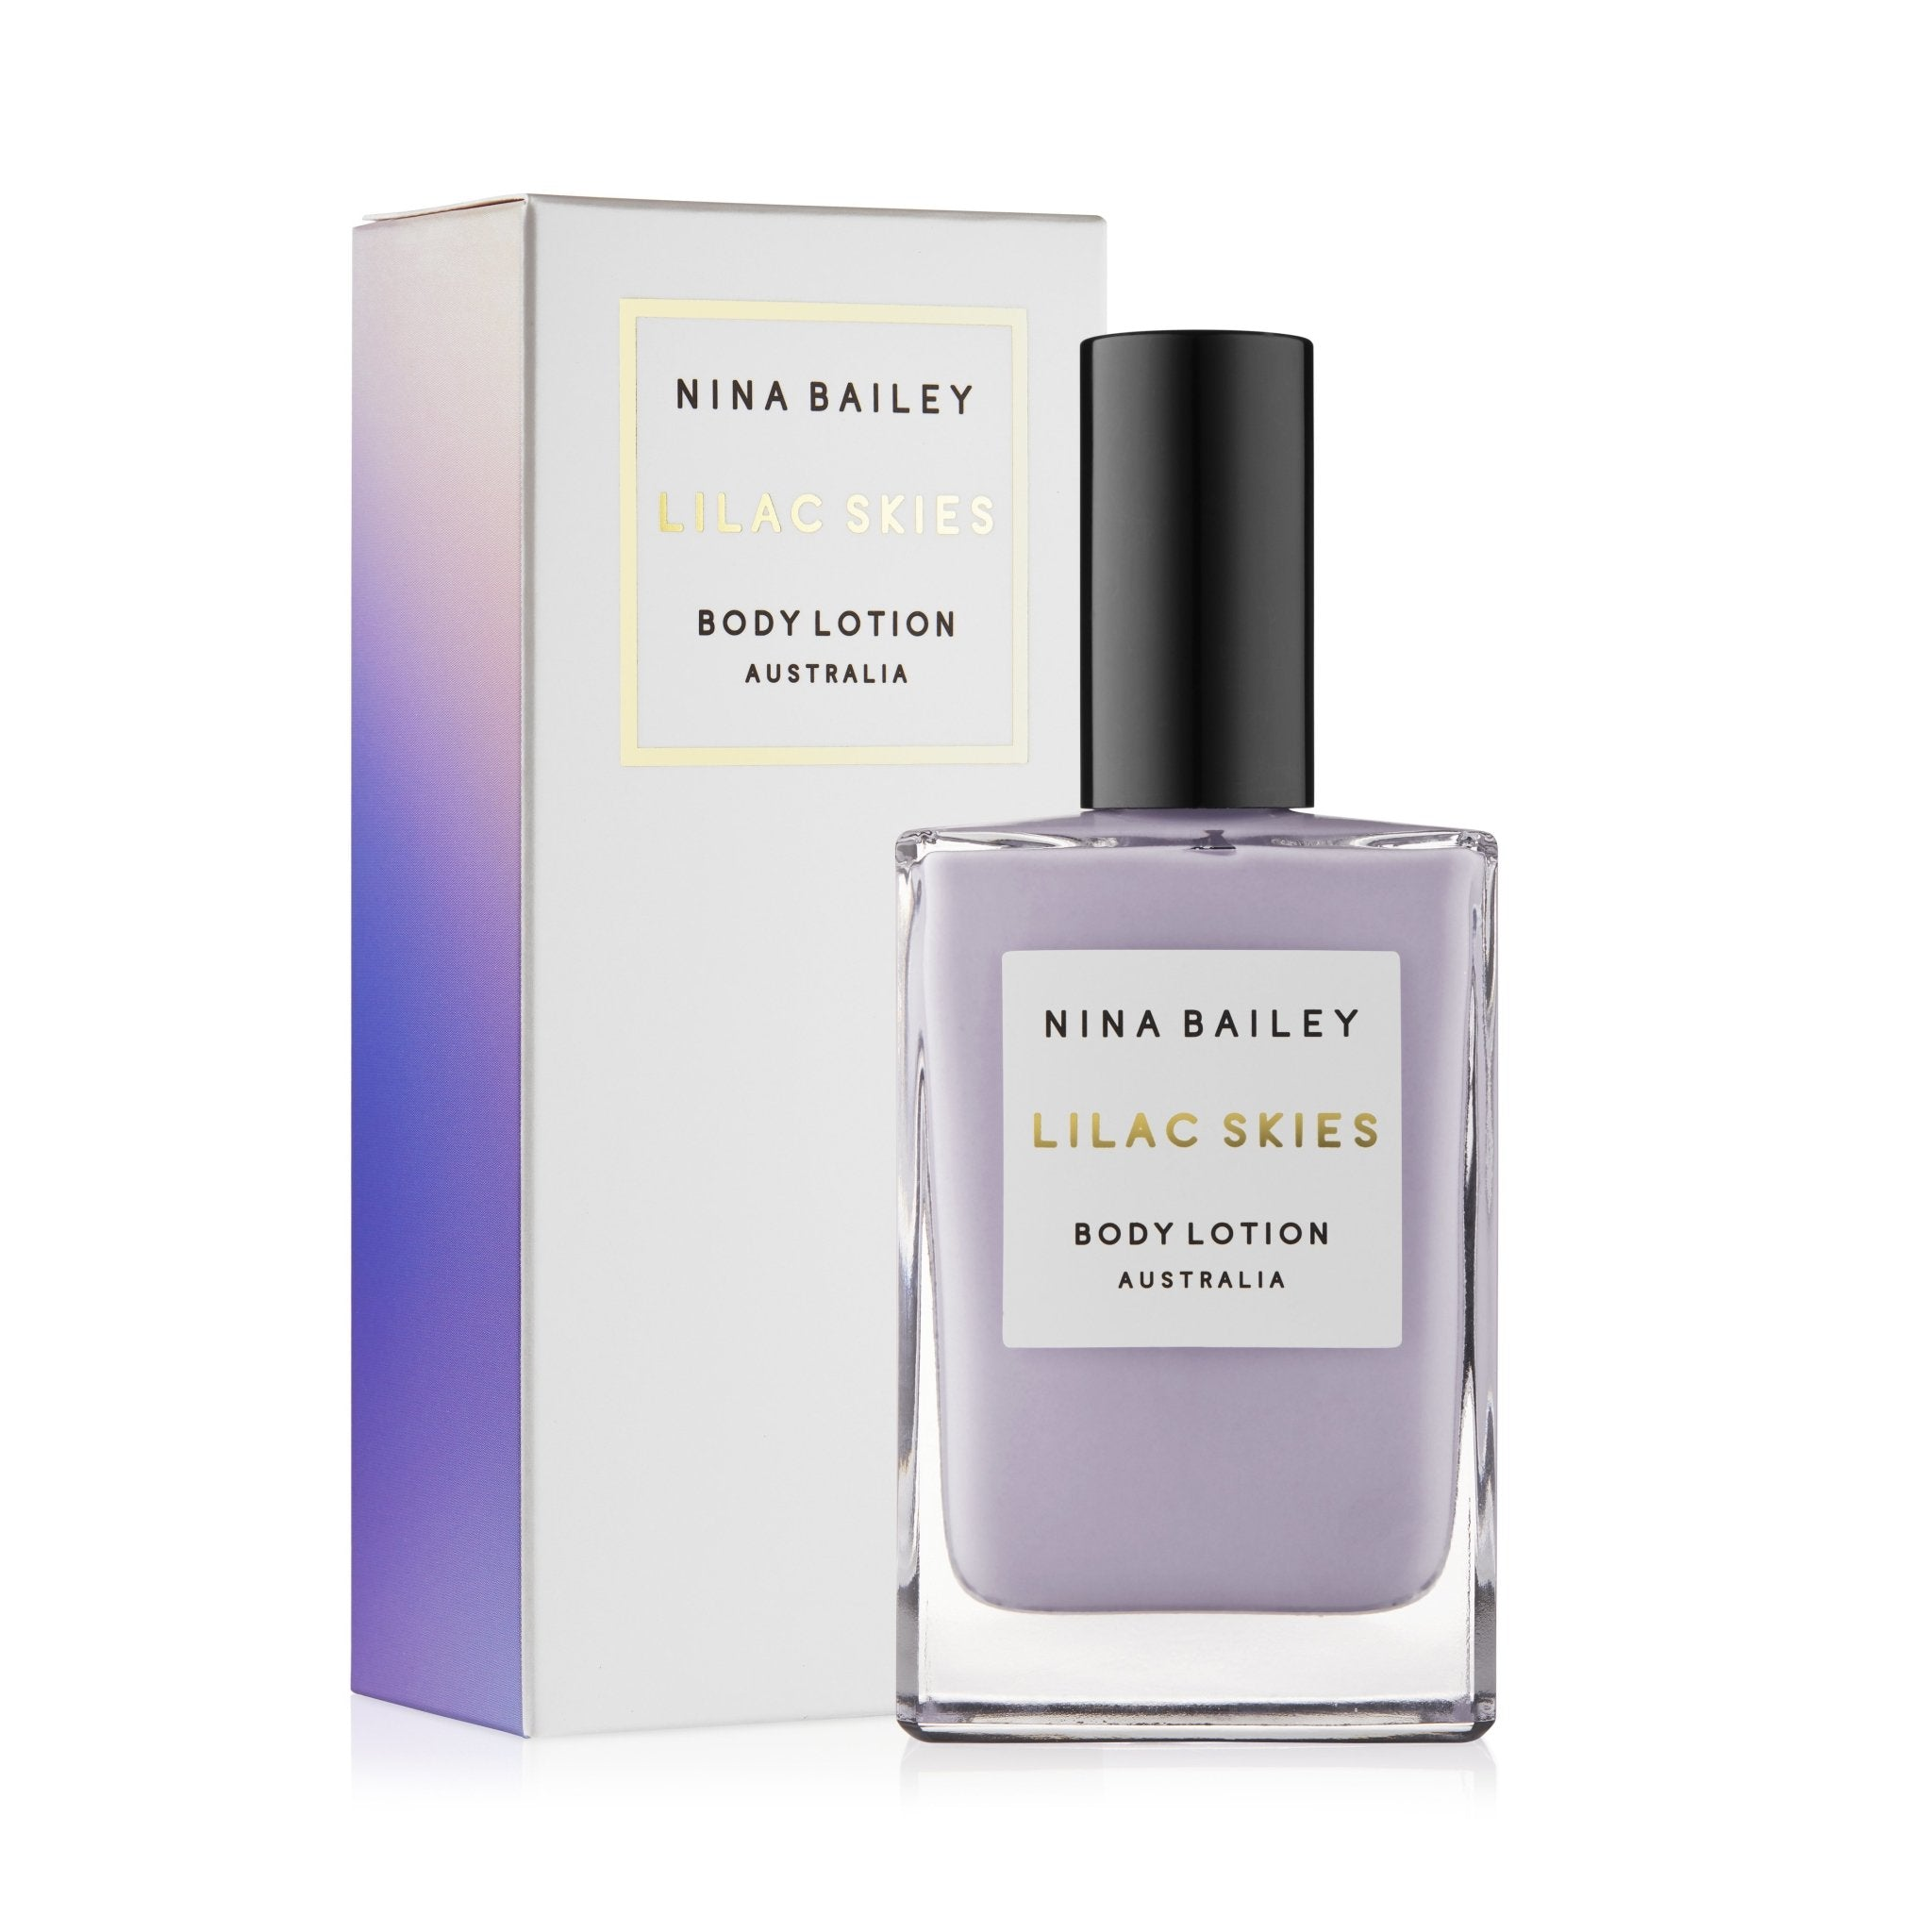 Lilac Skies Body Lotion - Nina Bailey